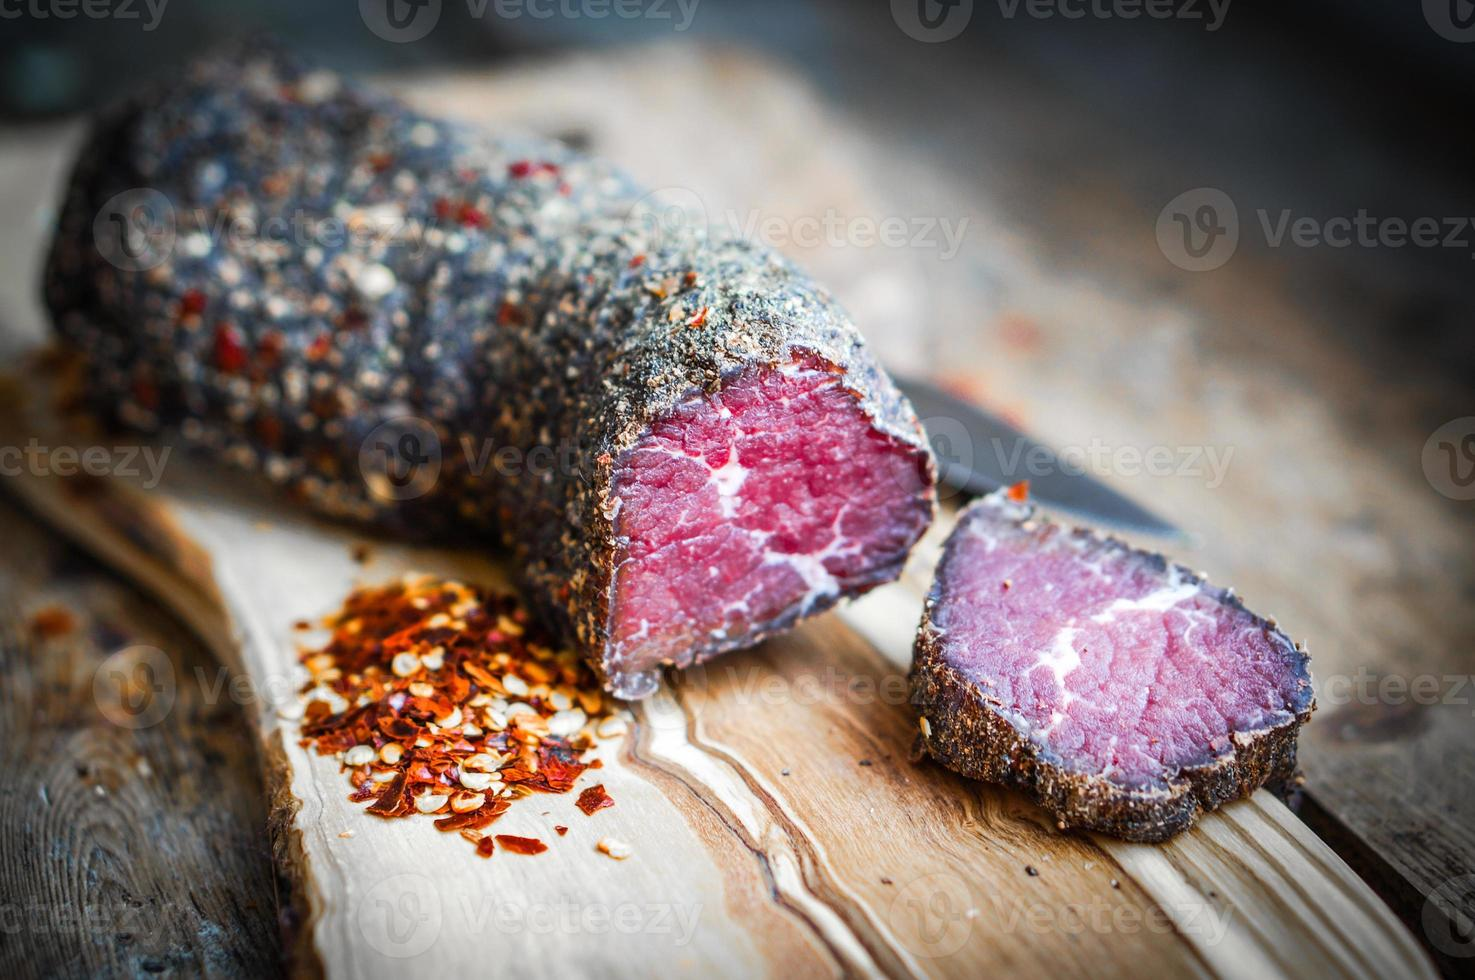 Dried meat with pepper and salt on rustic wooden background photo